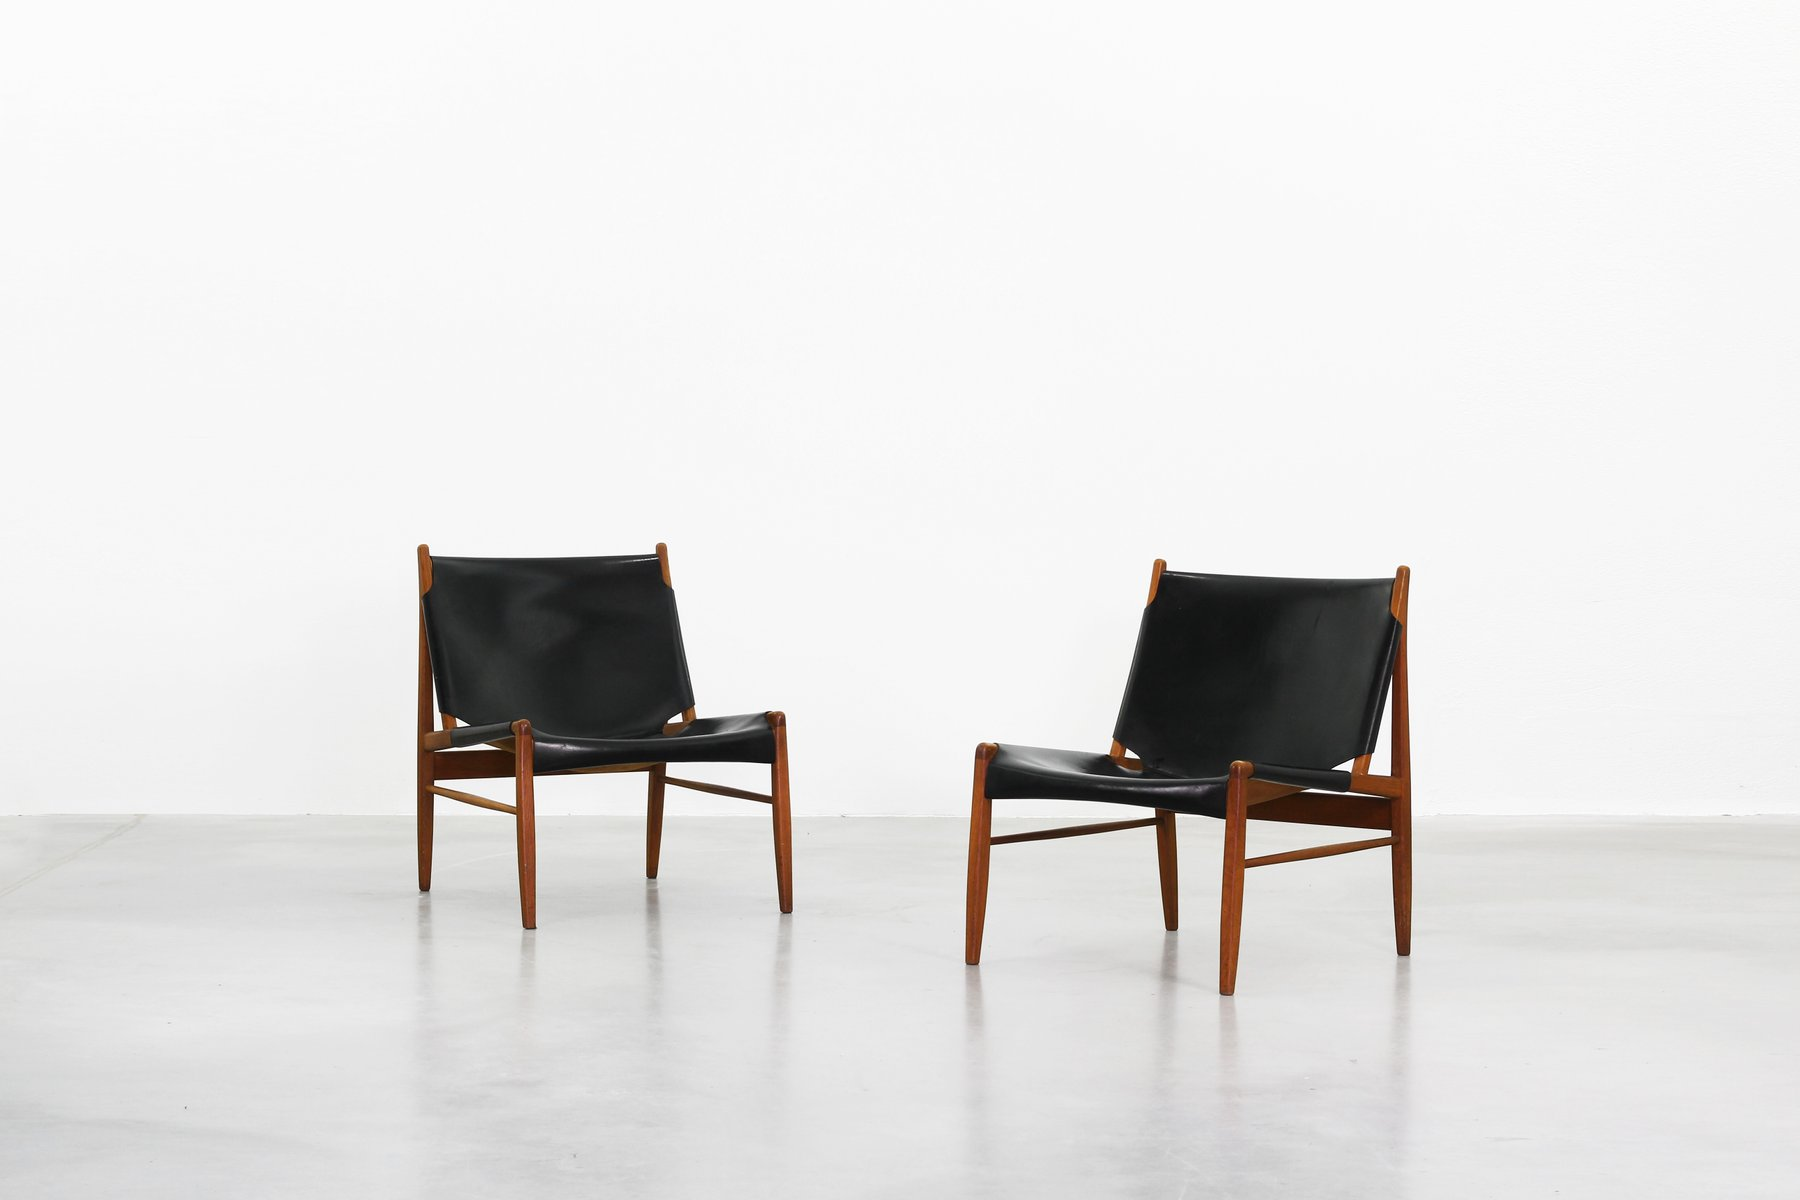 lounge chairs by franz xaver lutz for wk m bel 1958 set of 2 for sale at pamono. Black Bedroom Furniture Sets. Home Design Ideas